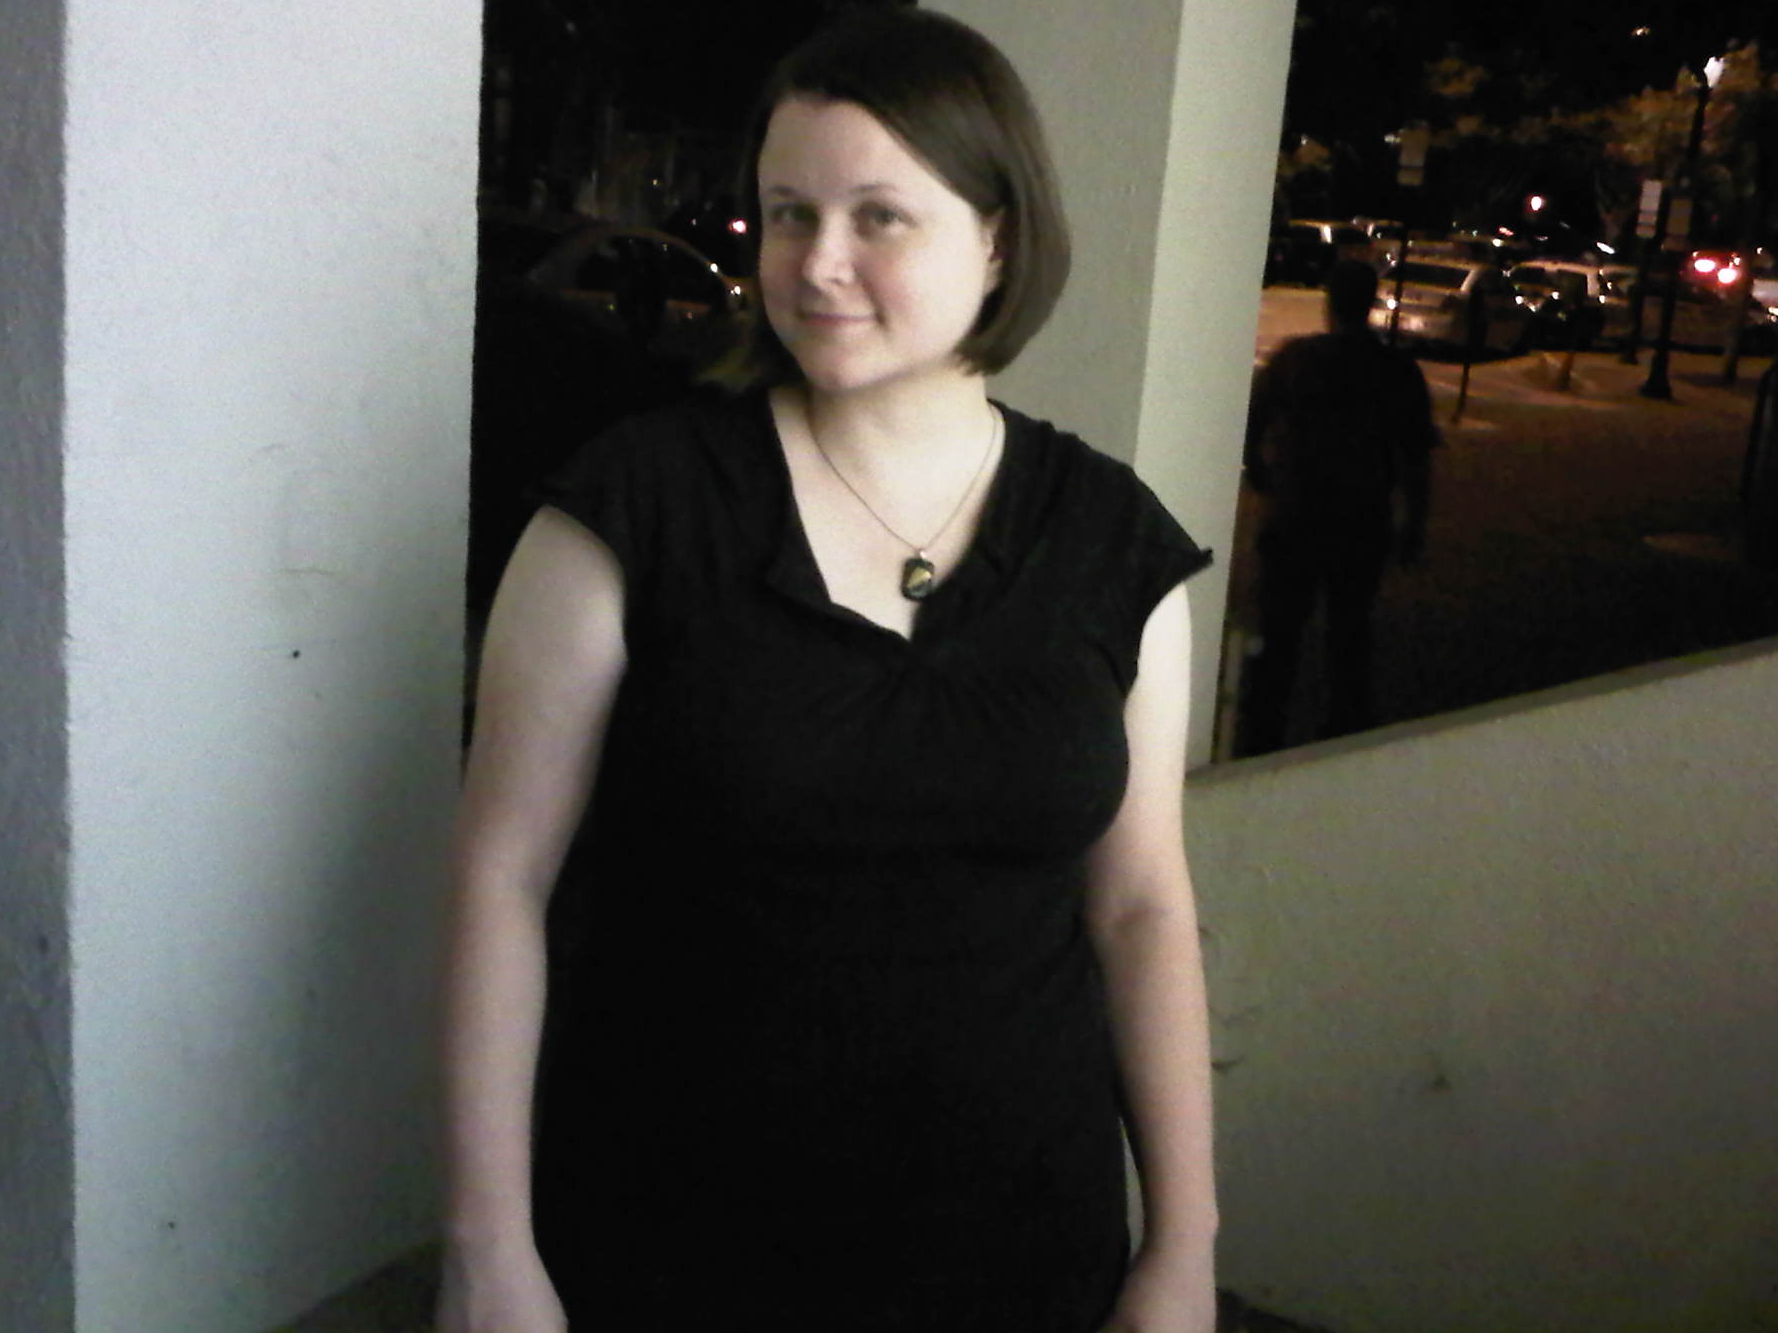 October 8, 2010. Wearing a size L shirt (down from XXL pre-primal) and size 14 jeans (down from size 18).